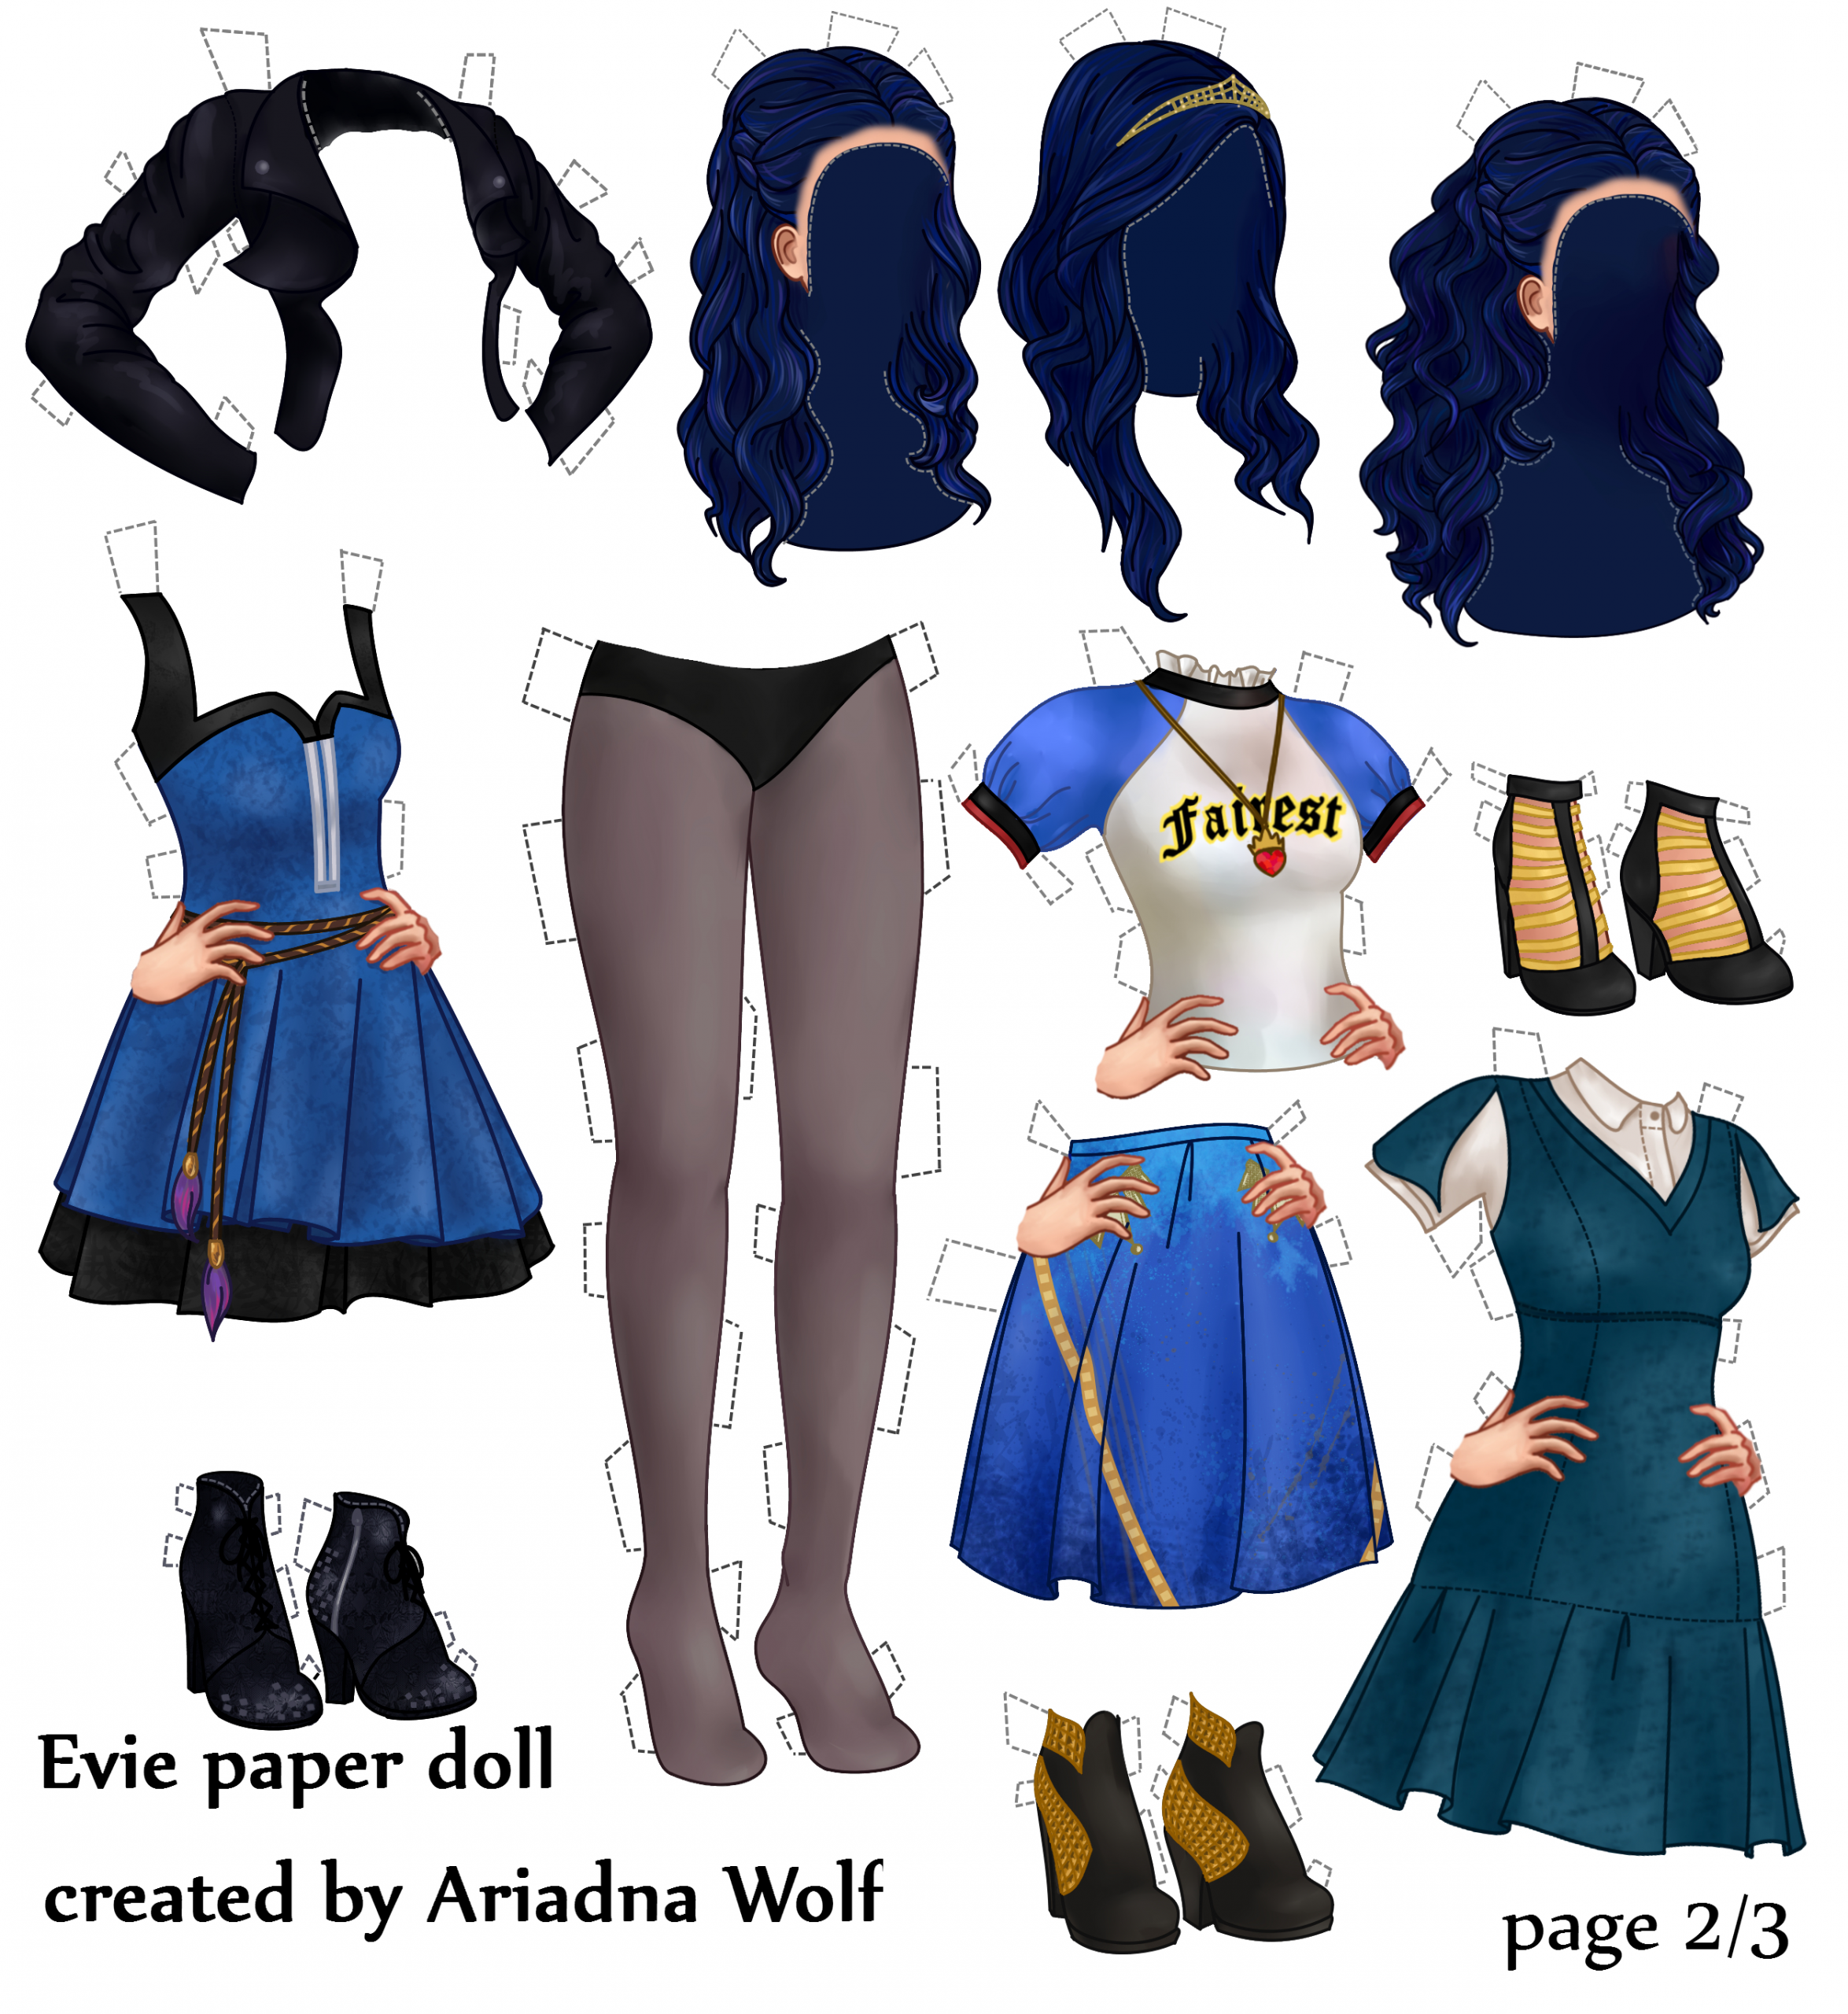 Disney Descendants Evie Paper Doll | Salle De Jeux, Dessin serapportantà Jeux De Descendants